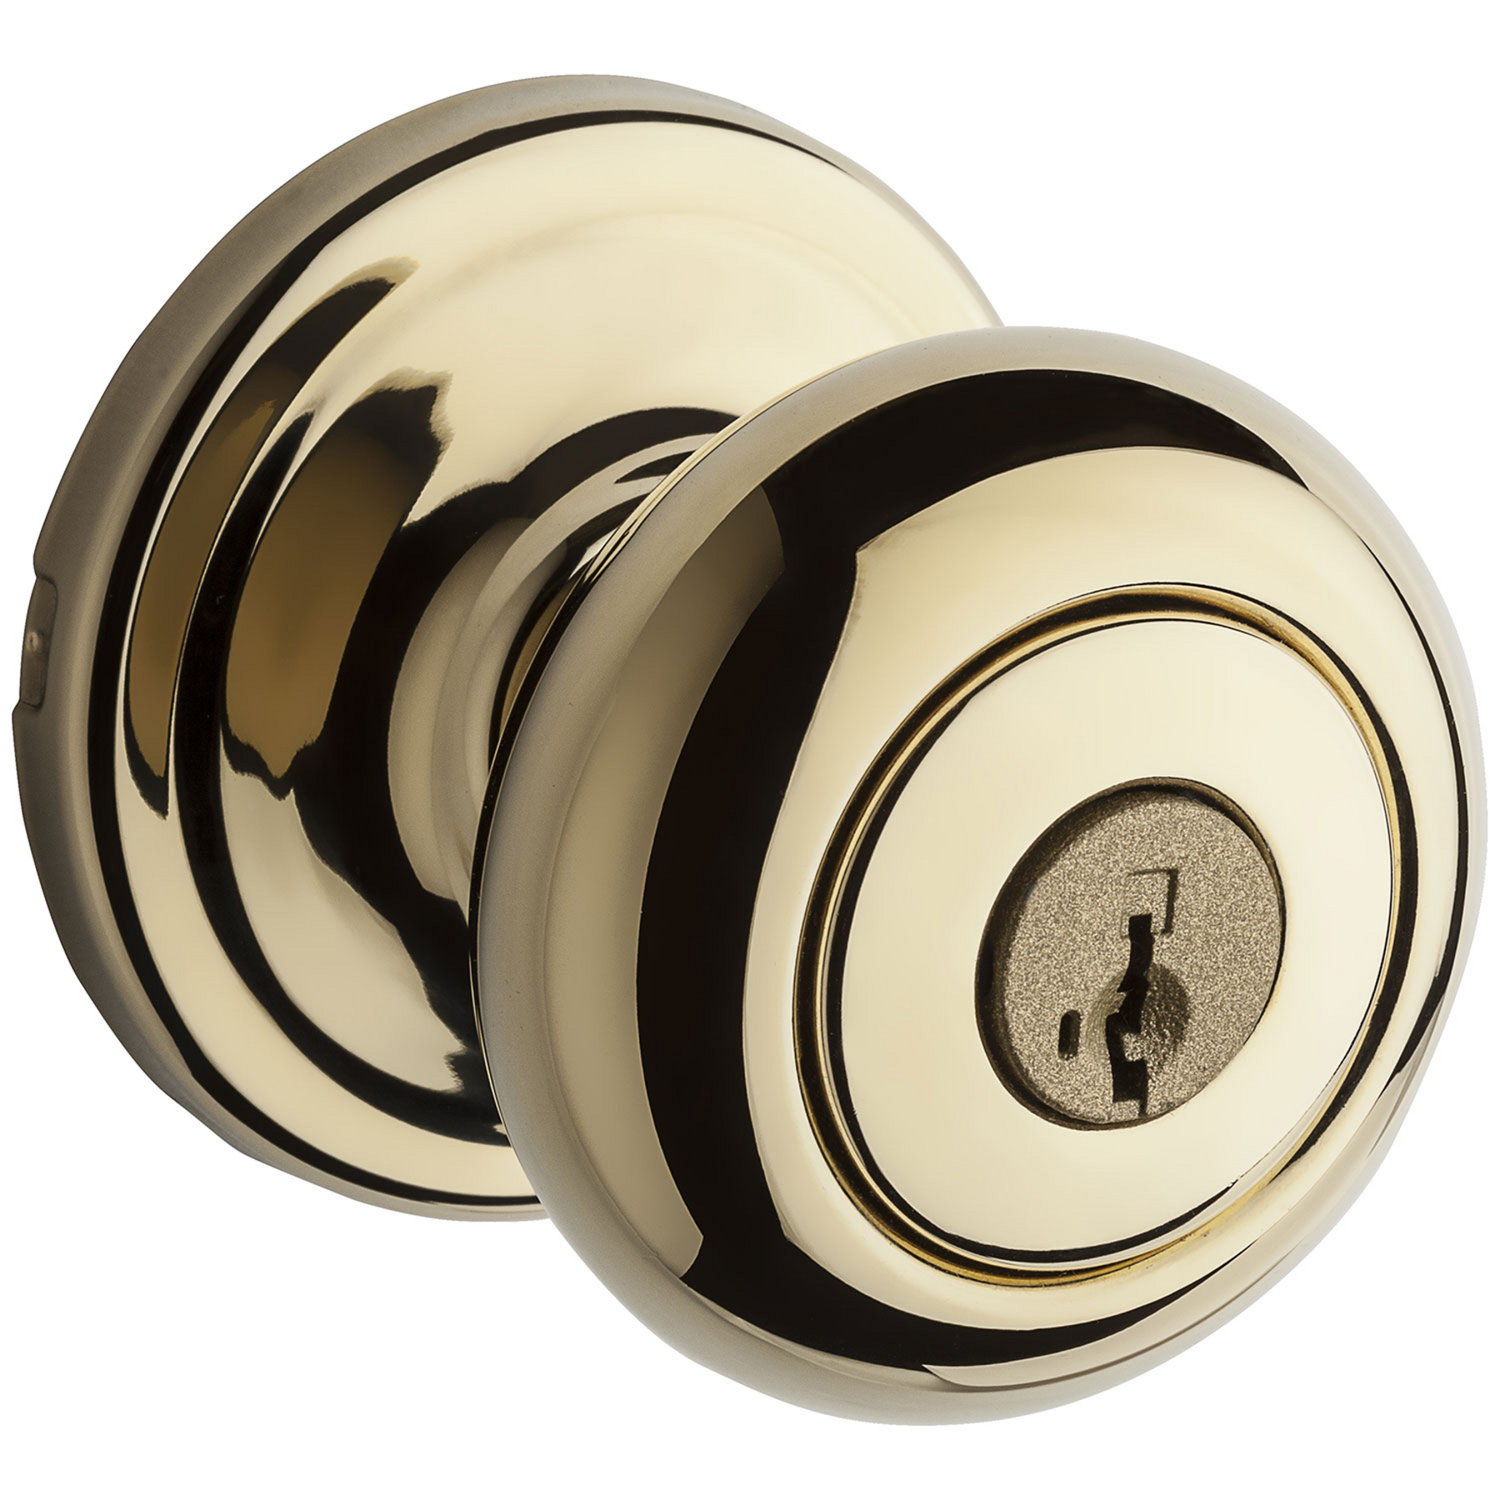 Kwikset  Juno  Polished Brass  Steel  Entry Lockset  1-3/4 in. ANSI/BHMA Grade 2